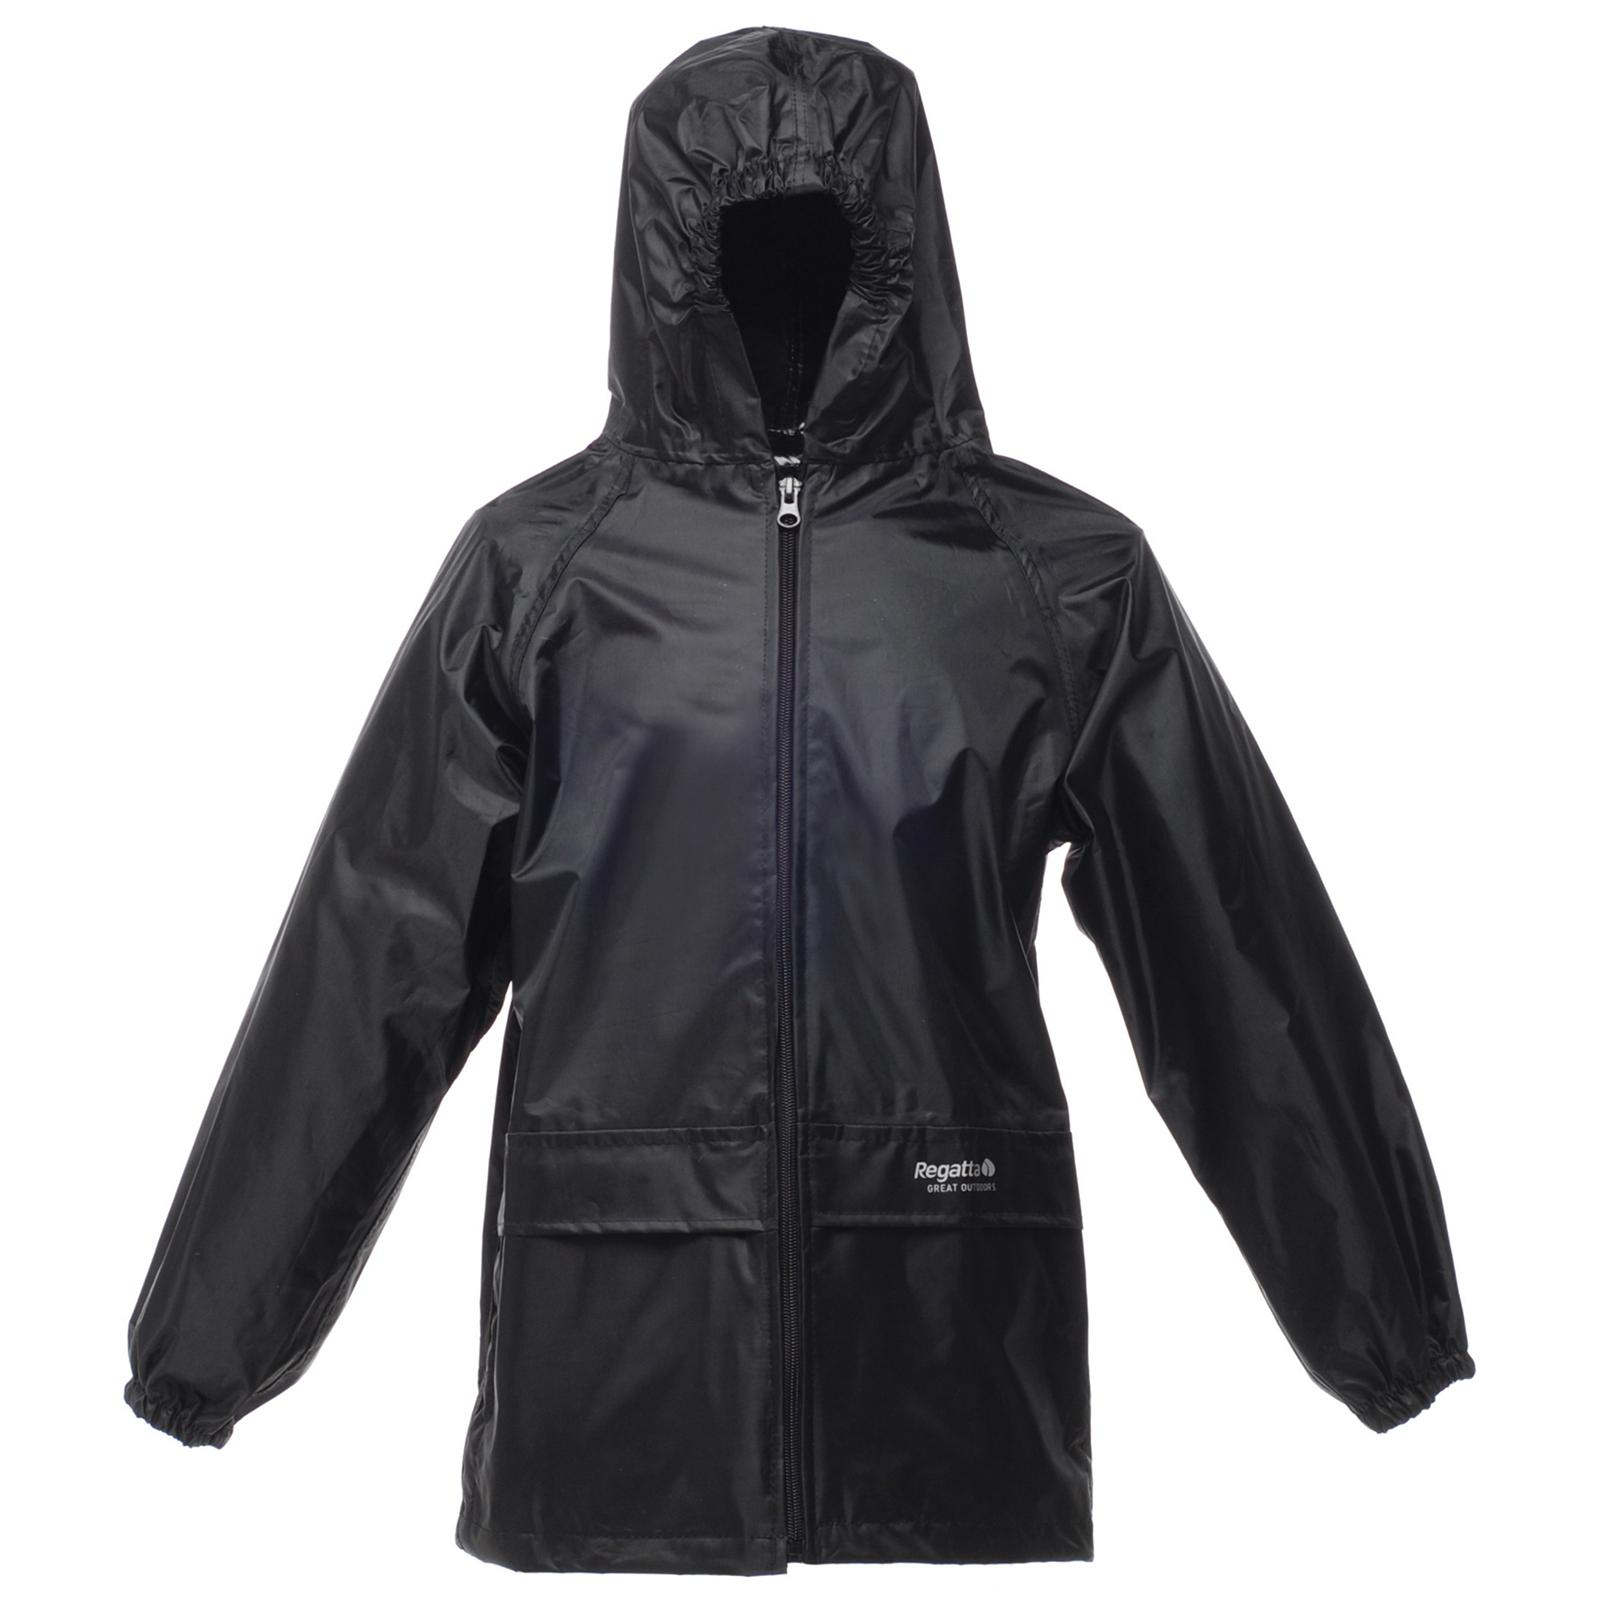 New REGATTA Childrens Kids Stormbreak Waterproof Rain Jacket Black ...